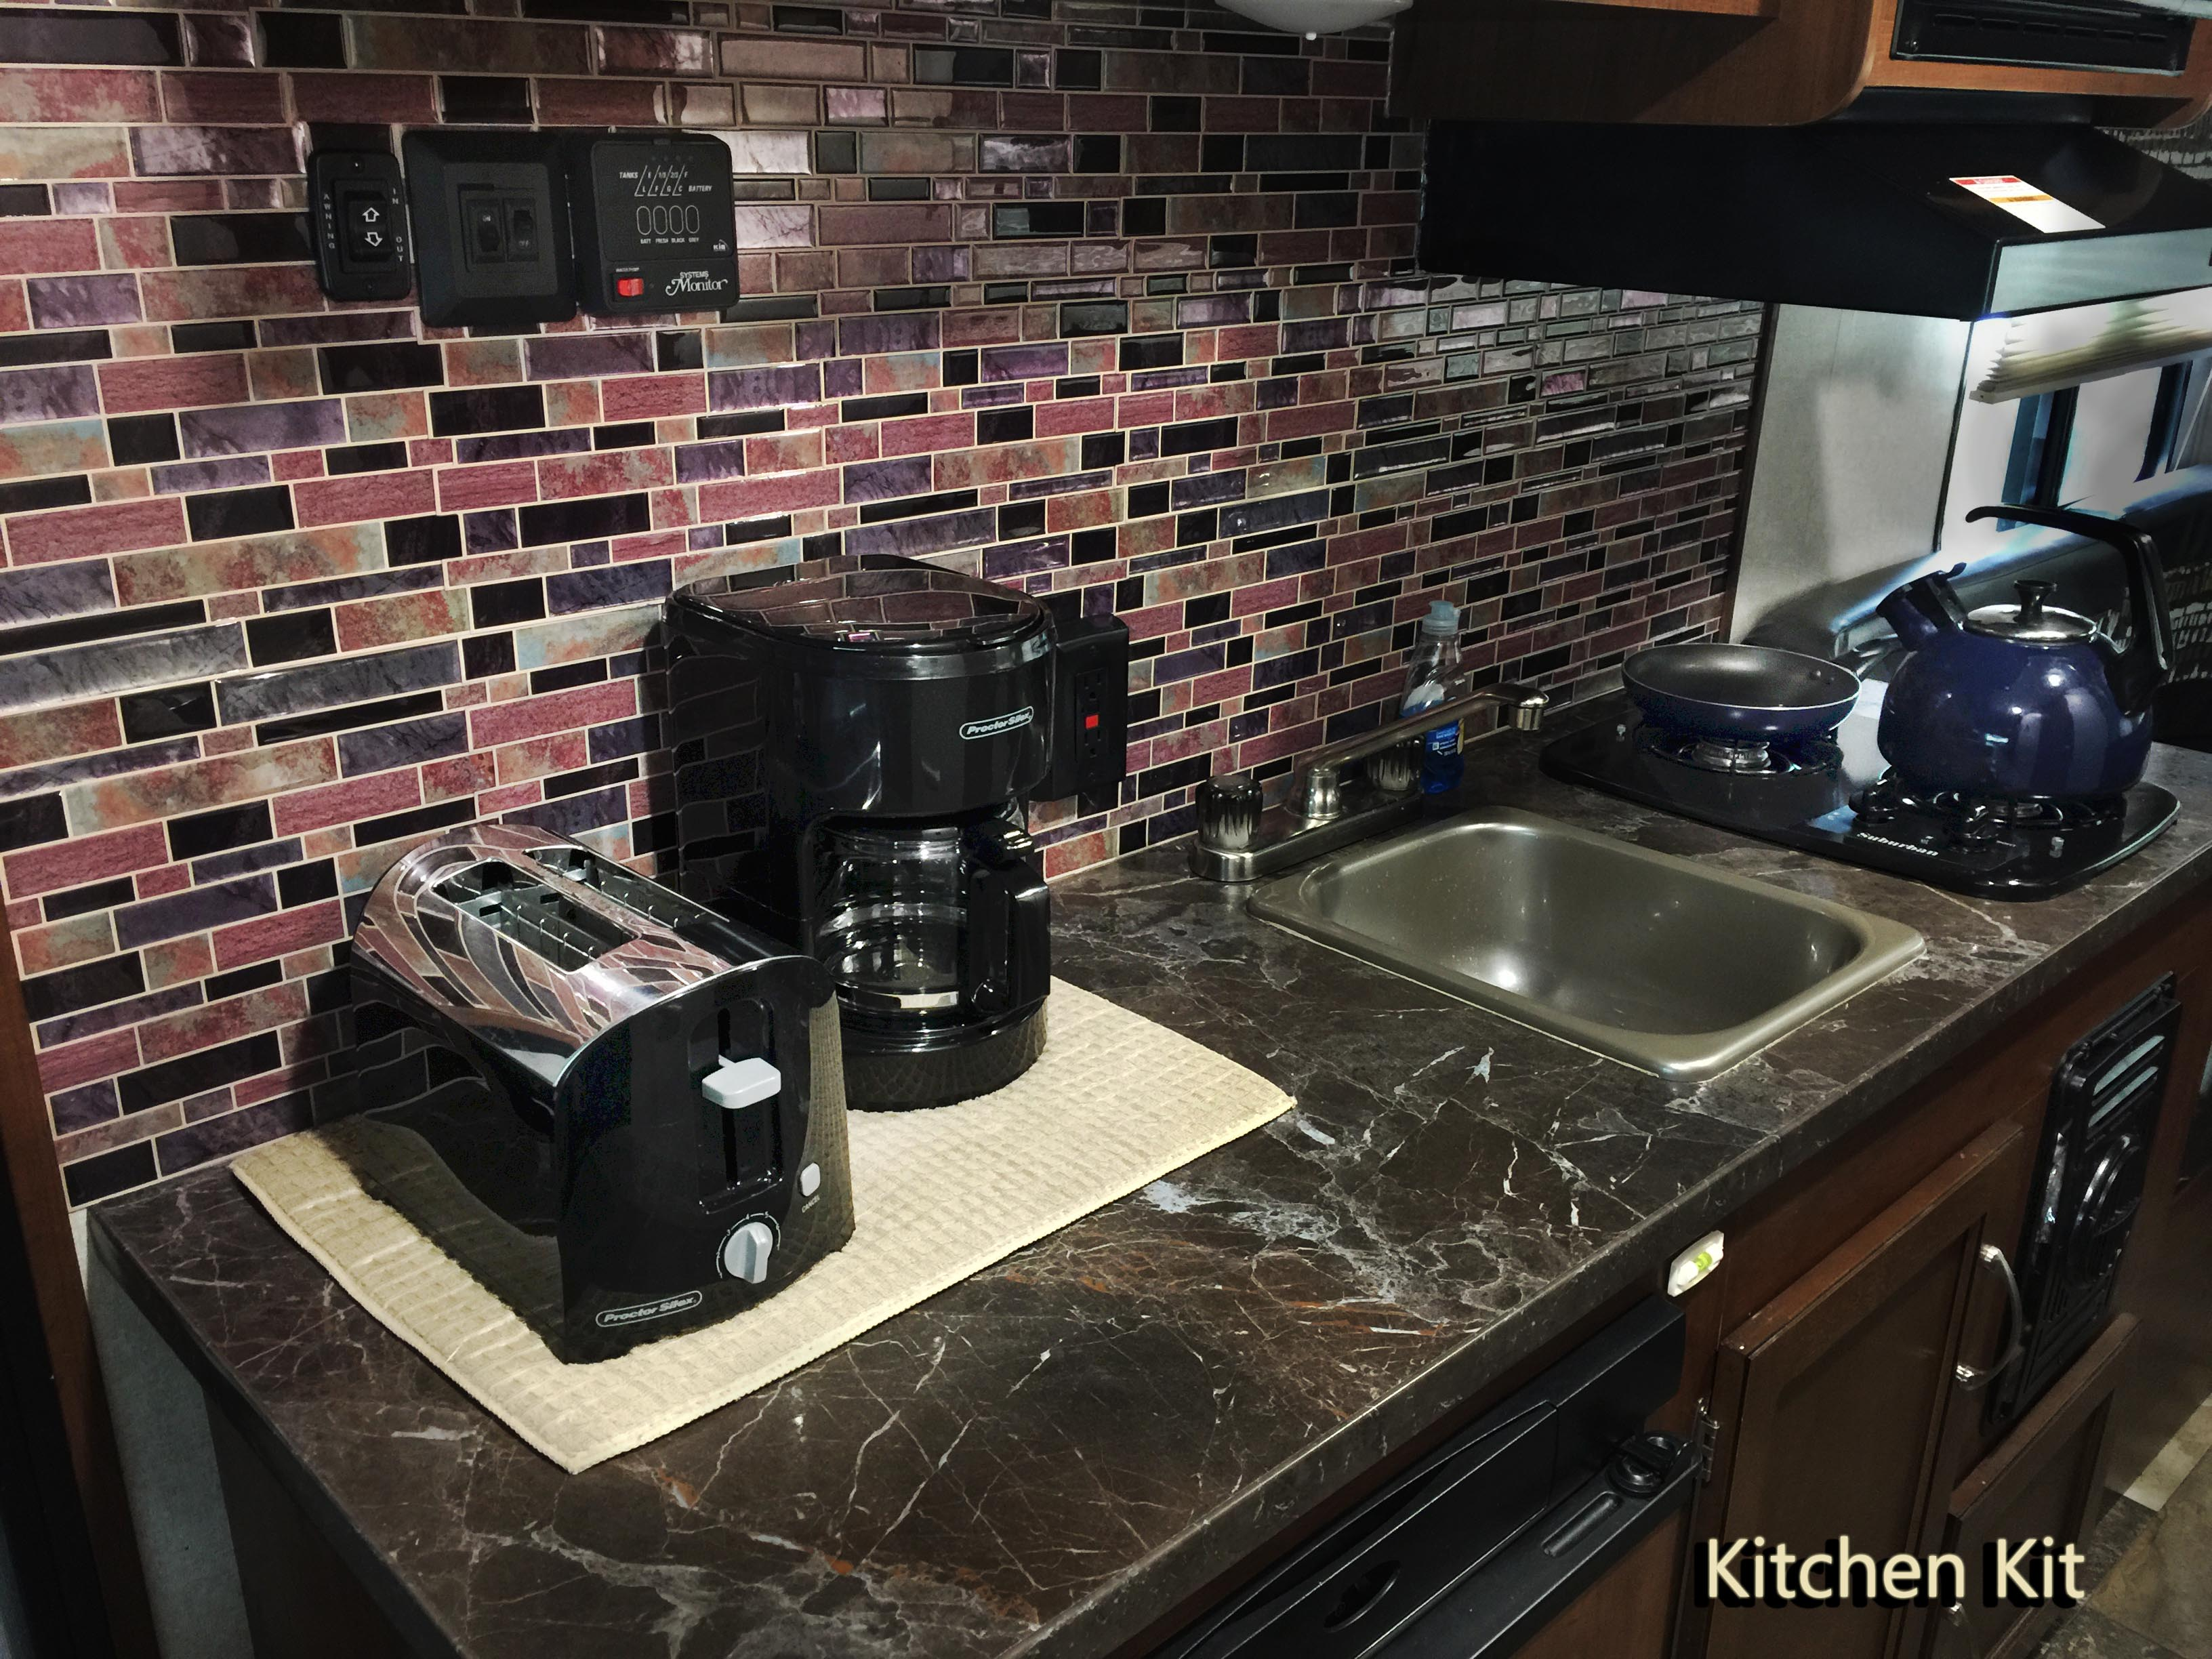 Kitchen Kit / utensils for eating and cooking. Up to four people.. Jayco Jay Flight 2017